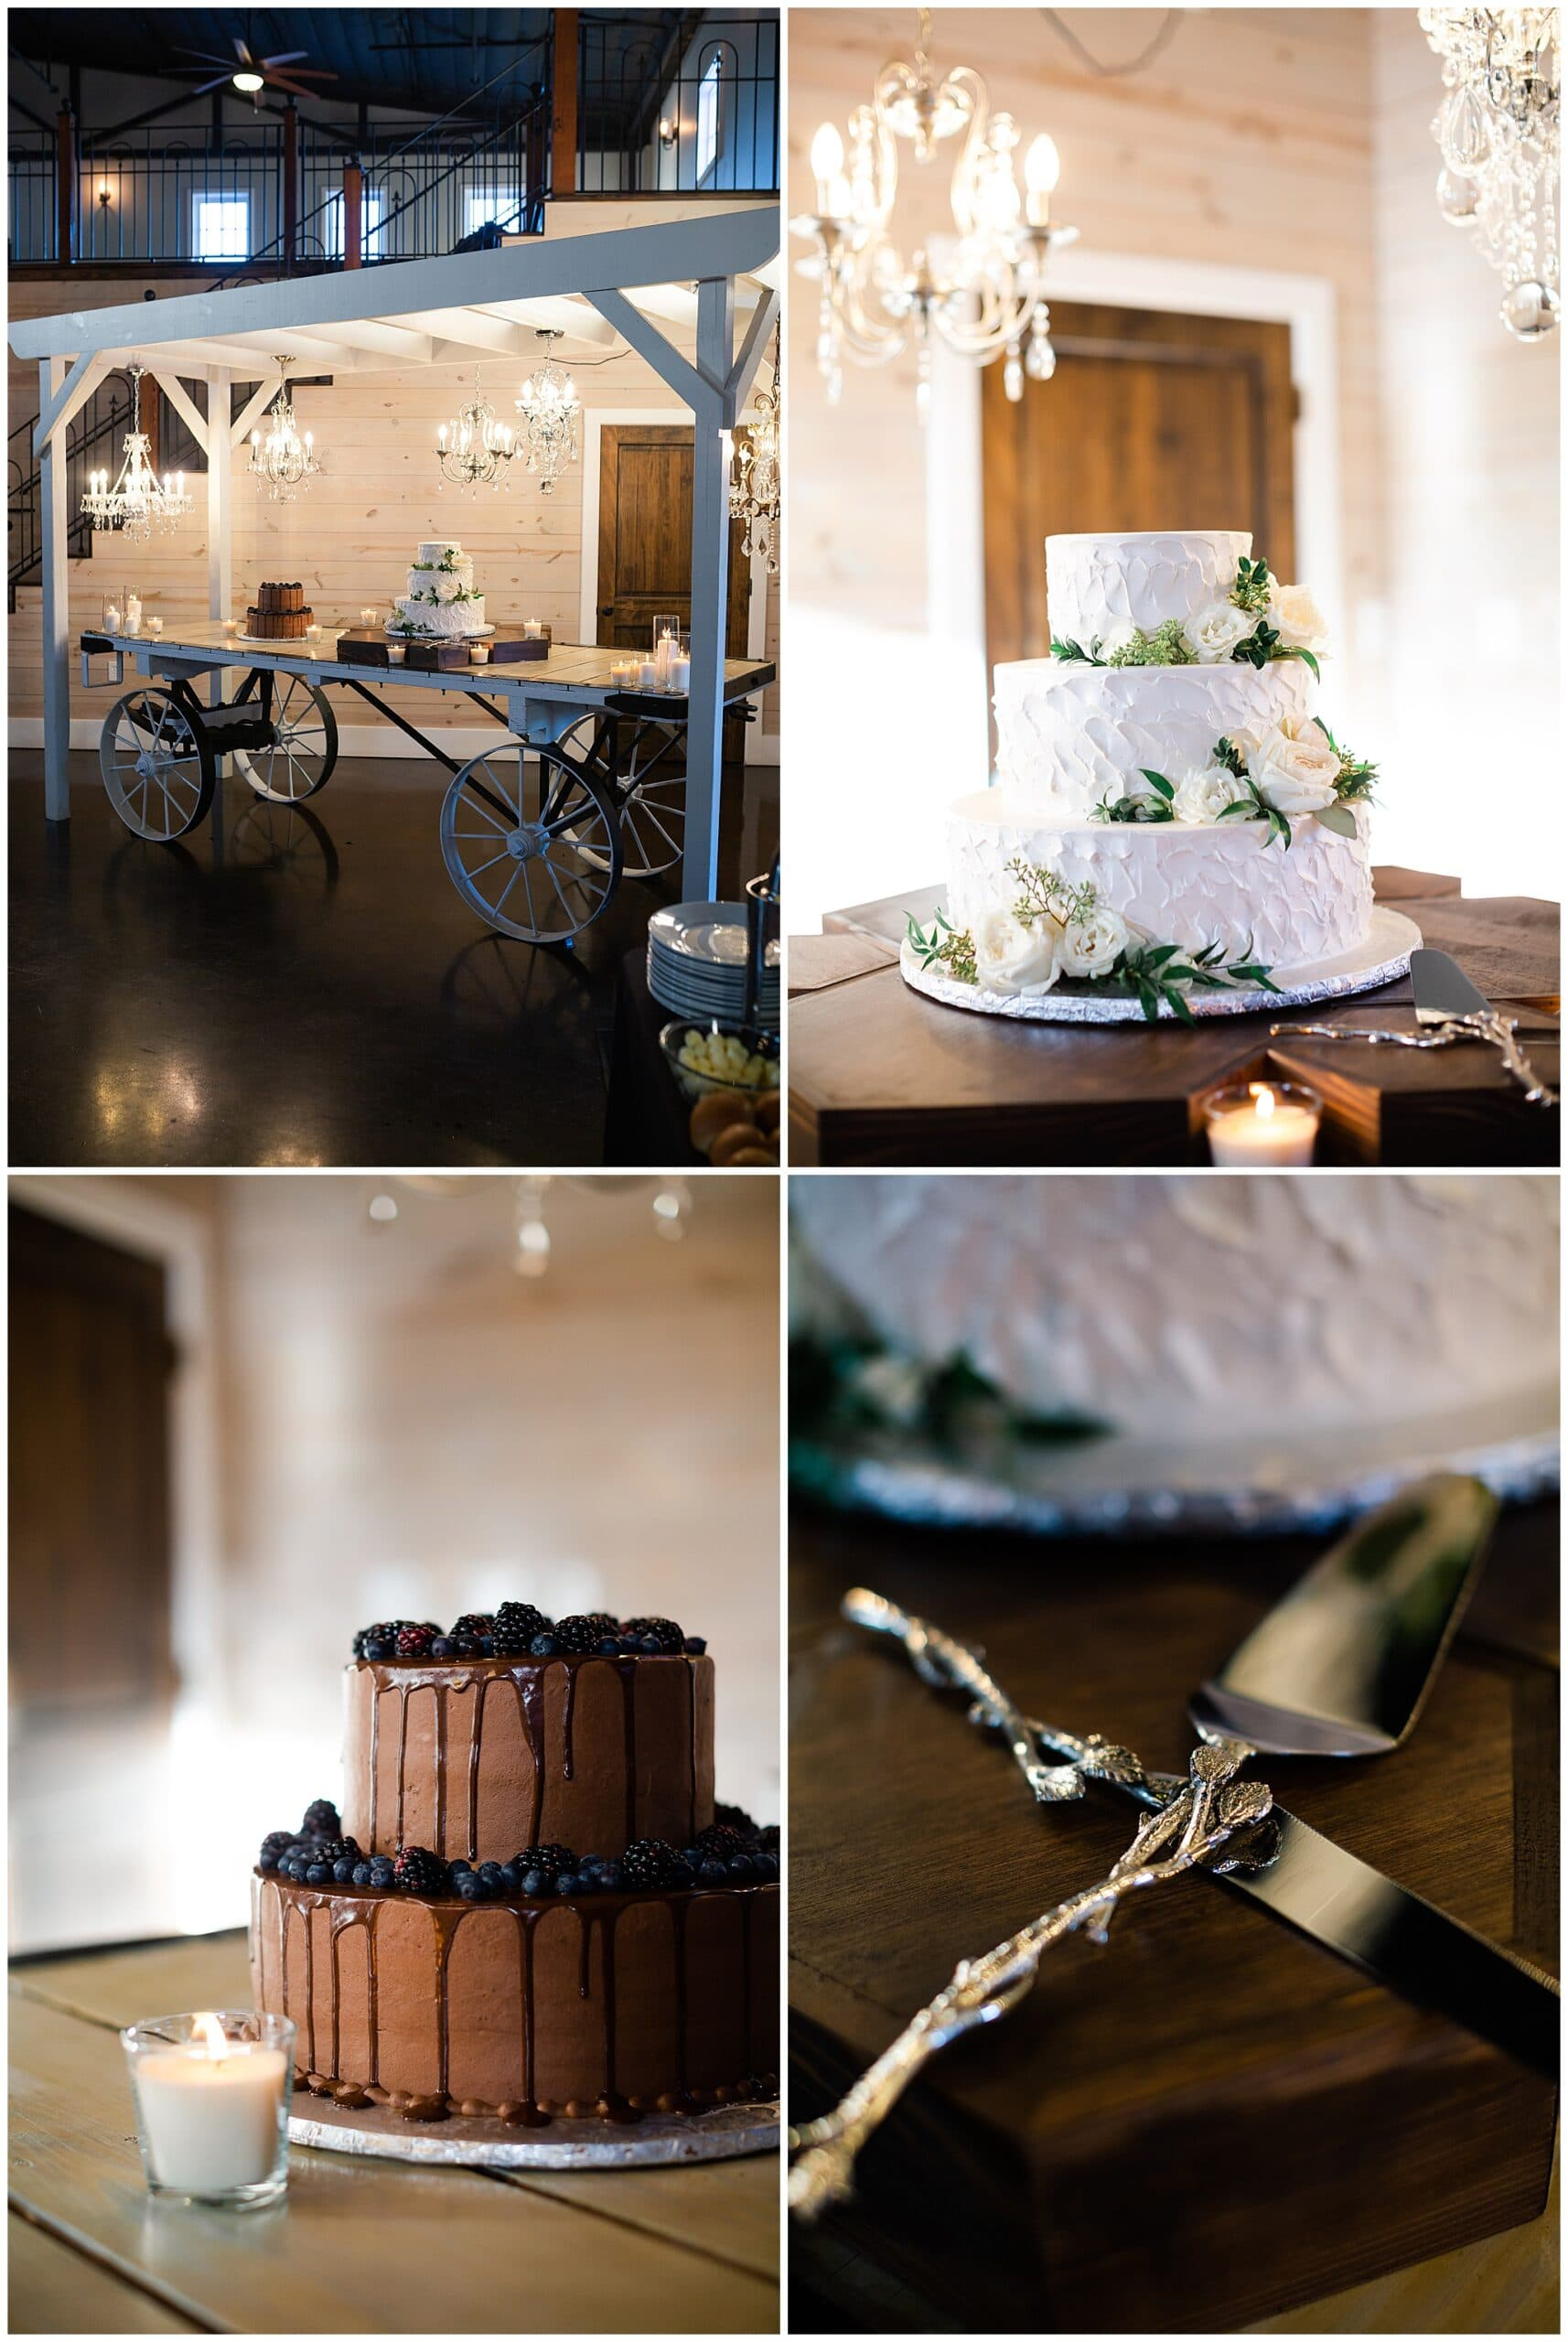 wedding cakes on display at Hochzeit Hall captured by Swish and Click Photography